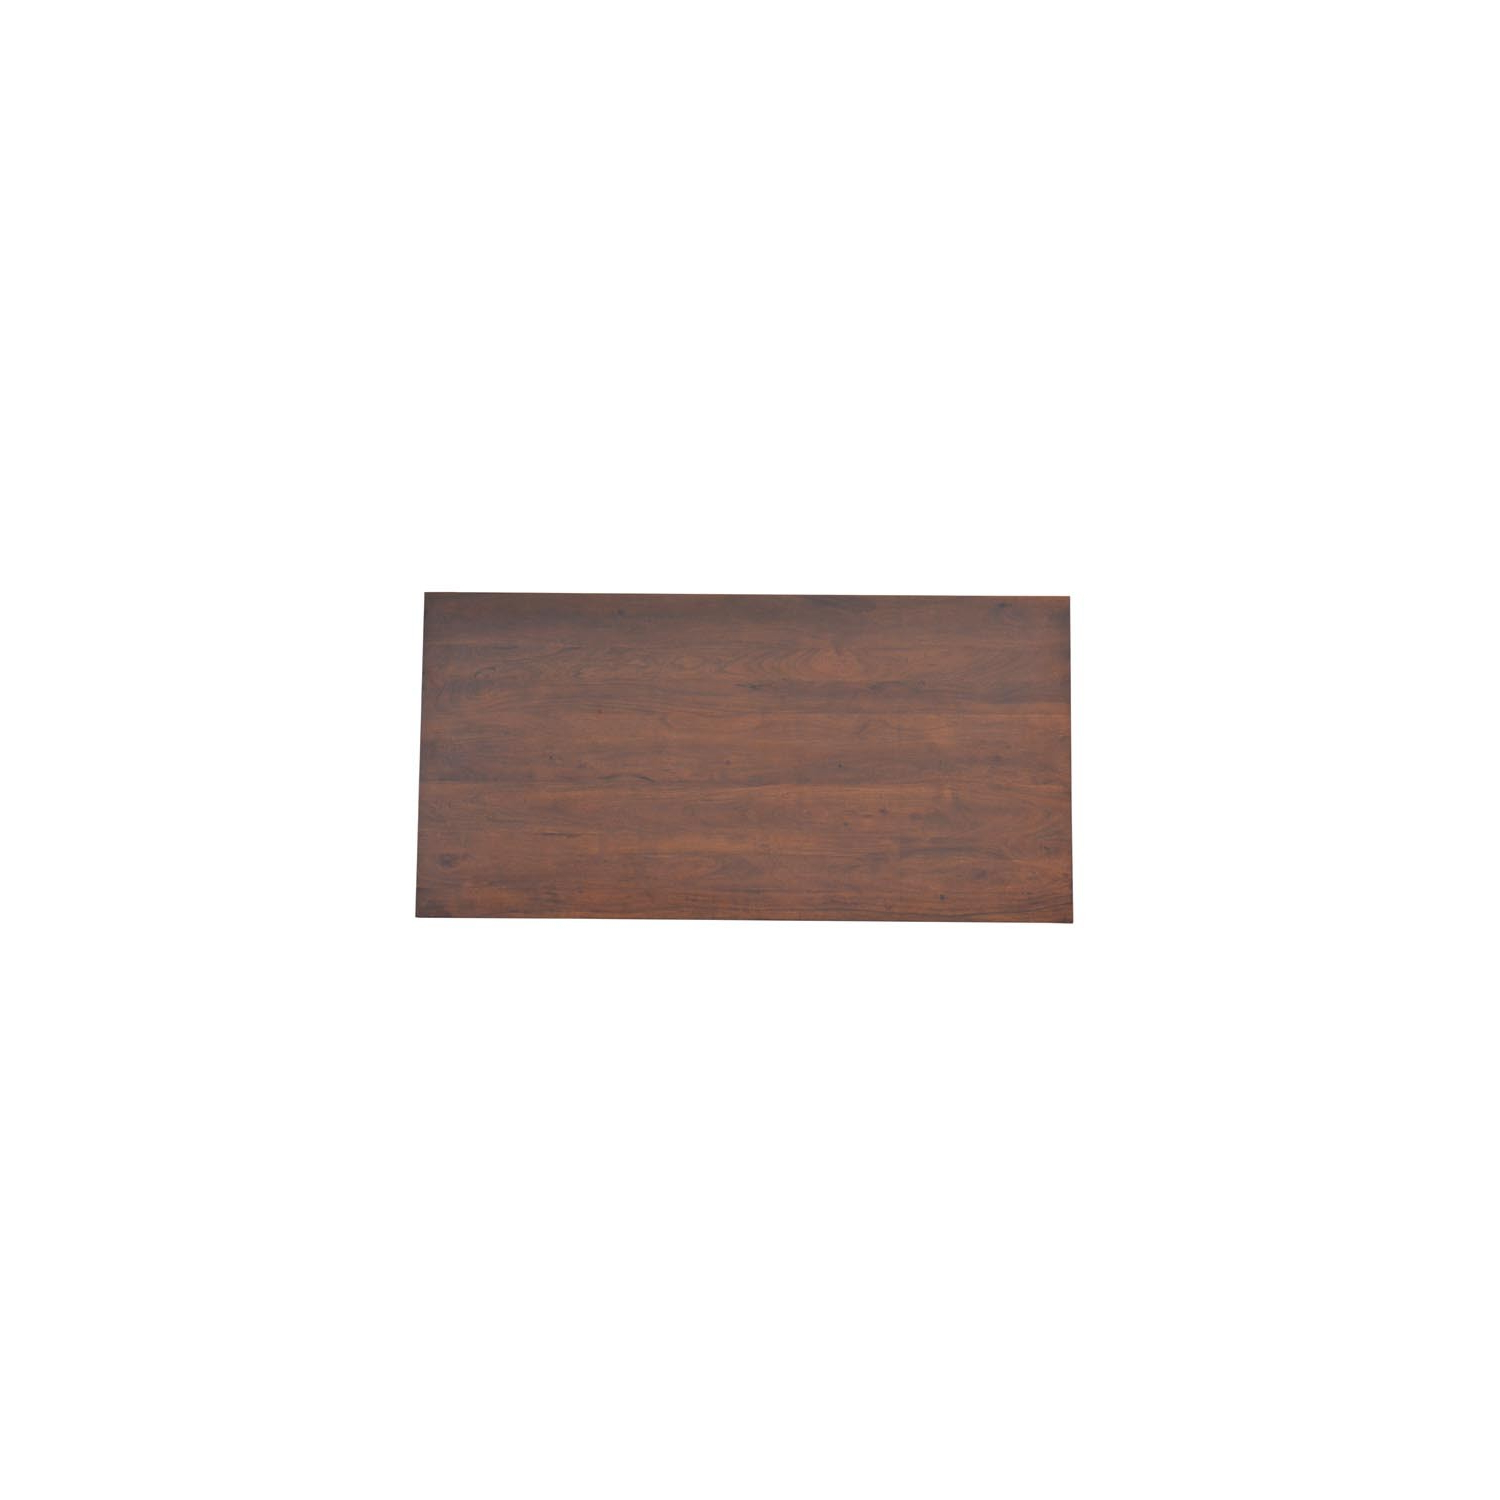 Cdi Furniture Pertaining To Most Current Acacia Wood Dining Tables With Sheet Metal Base (View 8 of 25)